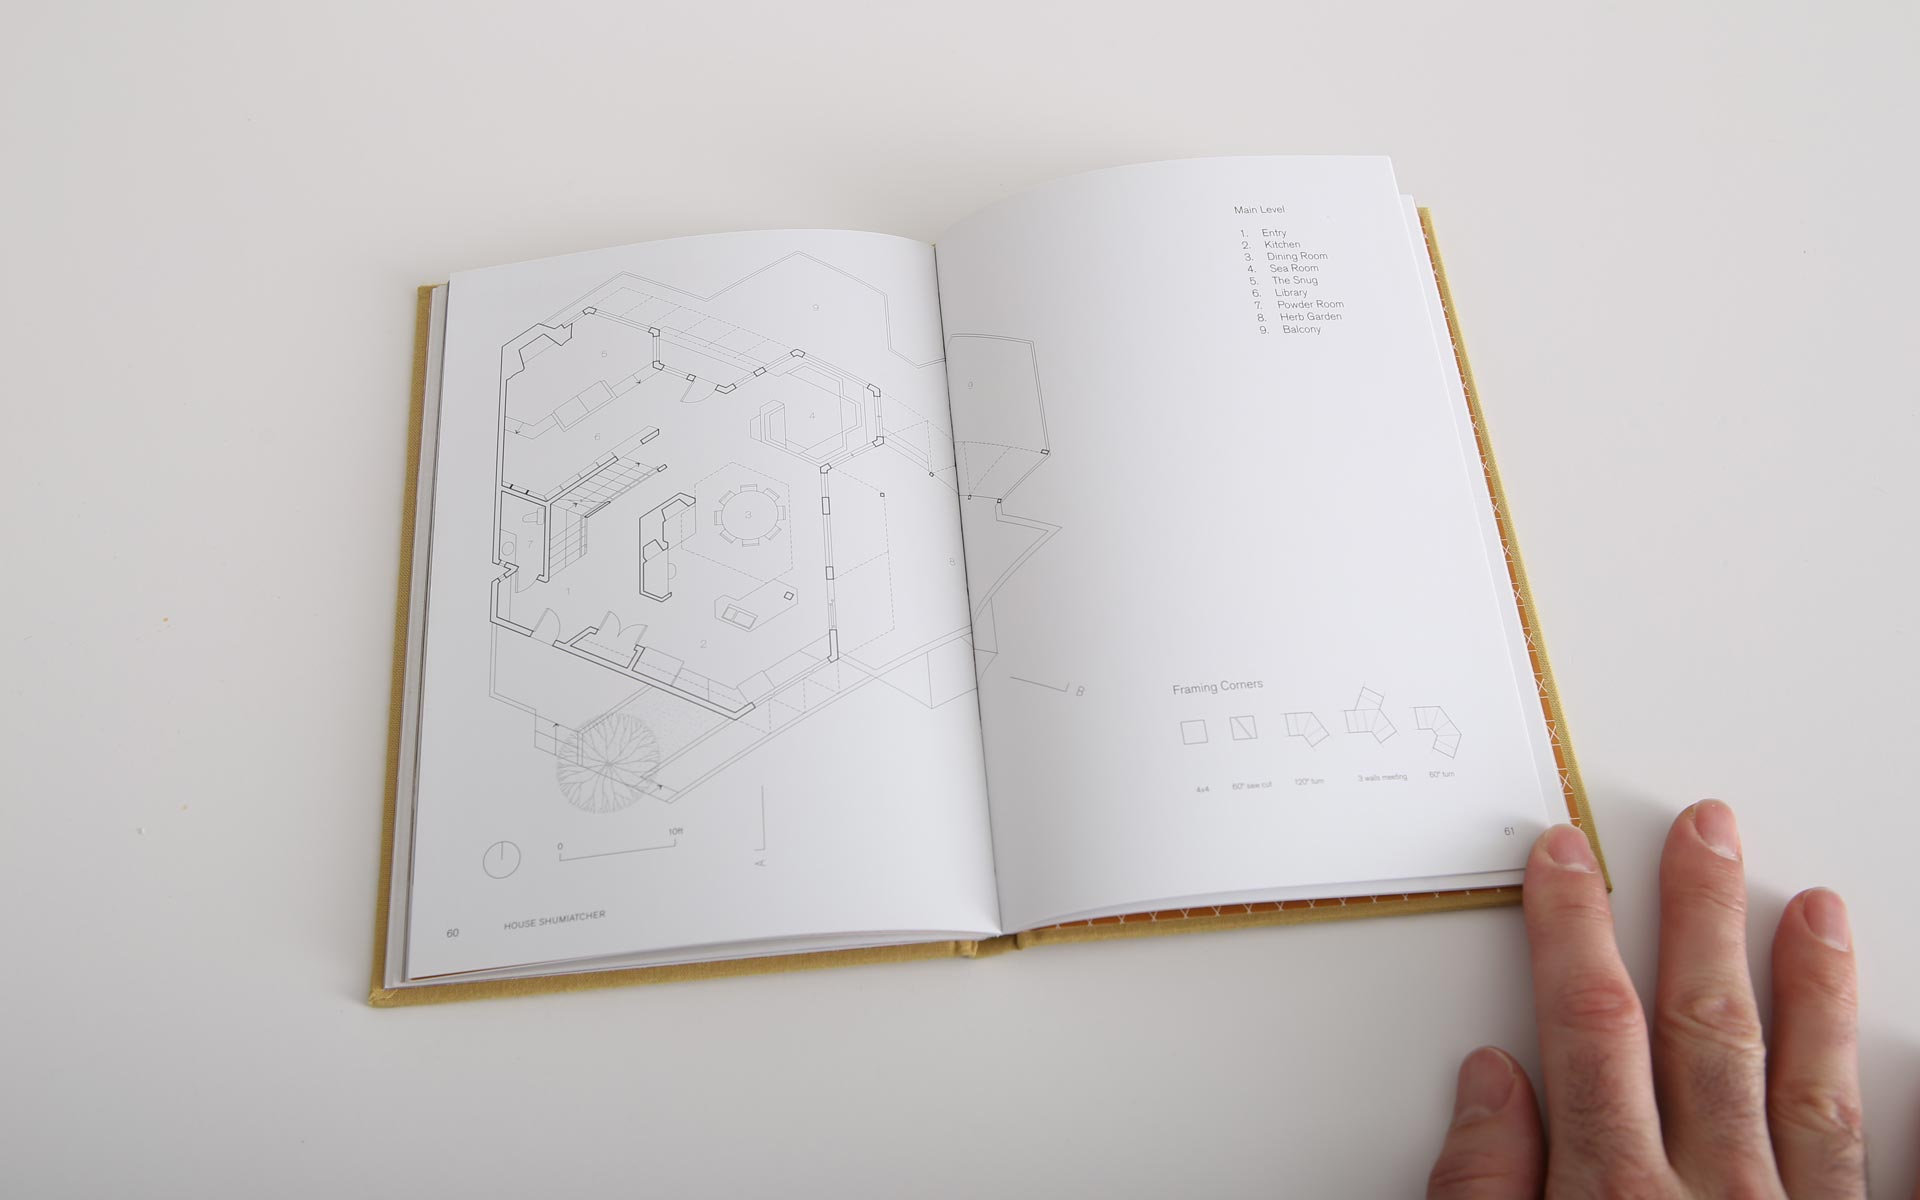 shumiatcher-ubc-sala-book-design-7